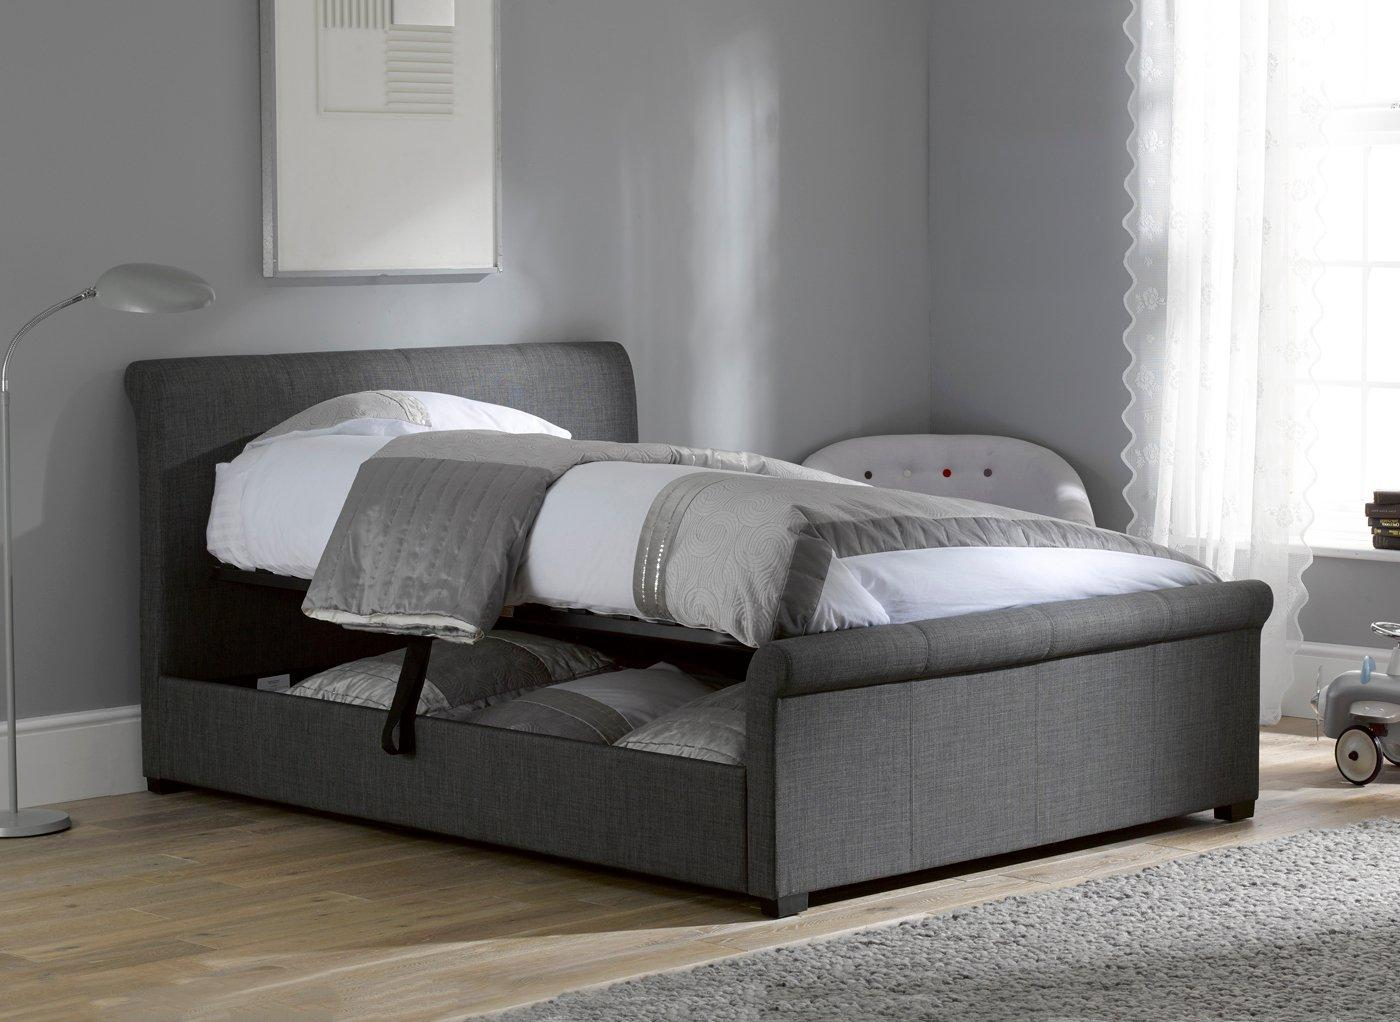 Storage Beds Double King Single Bed With Storage Dreams